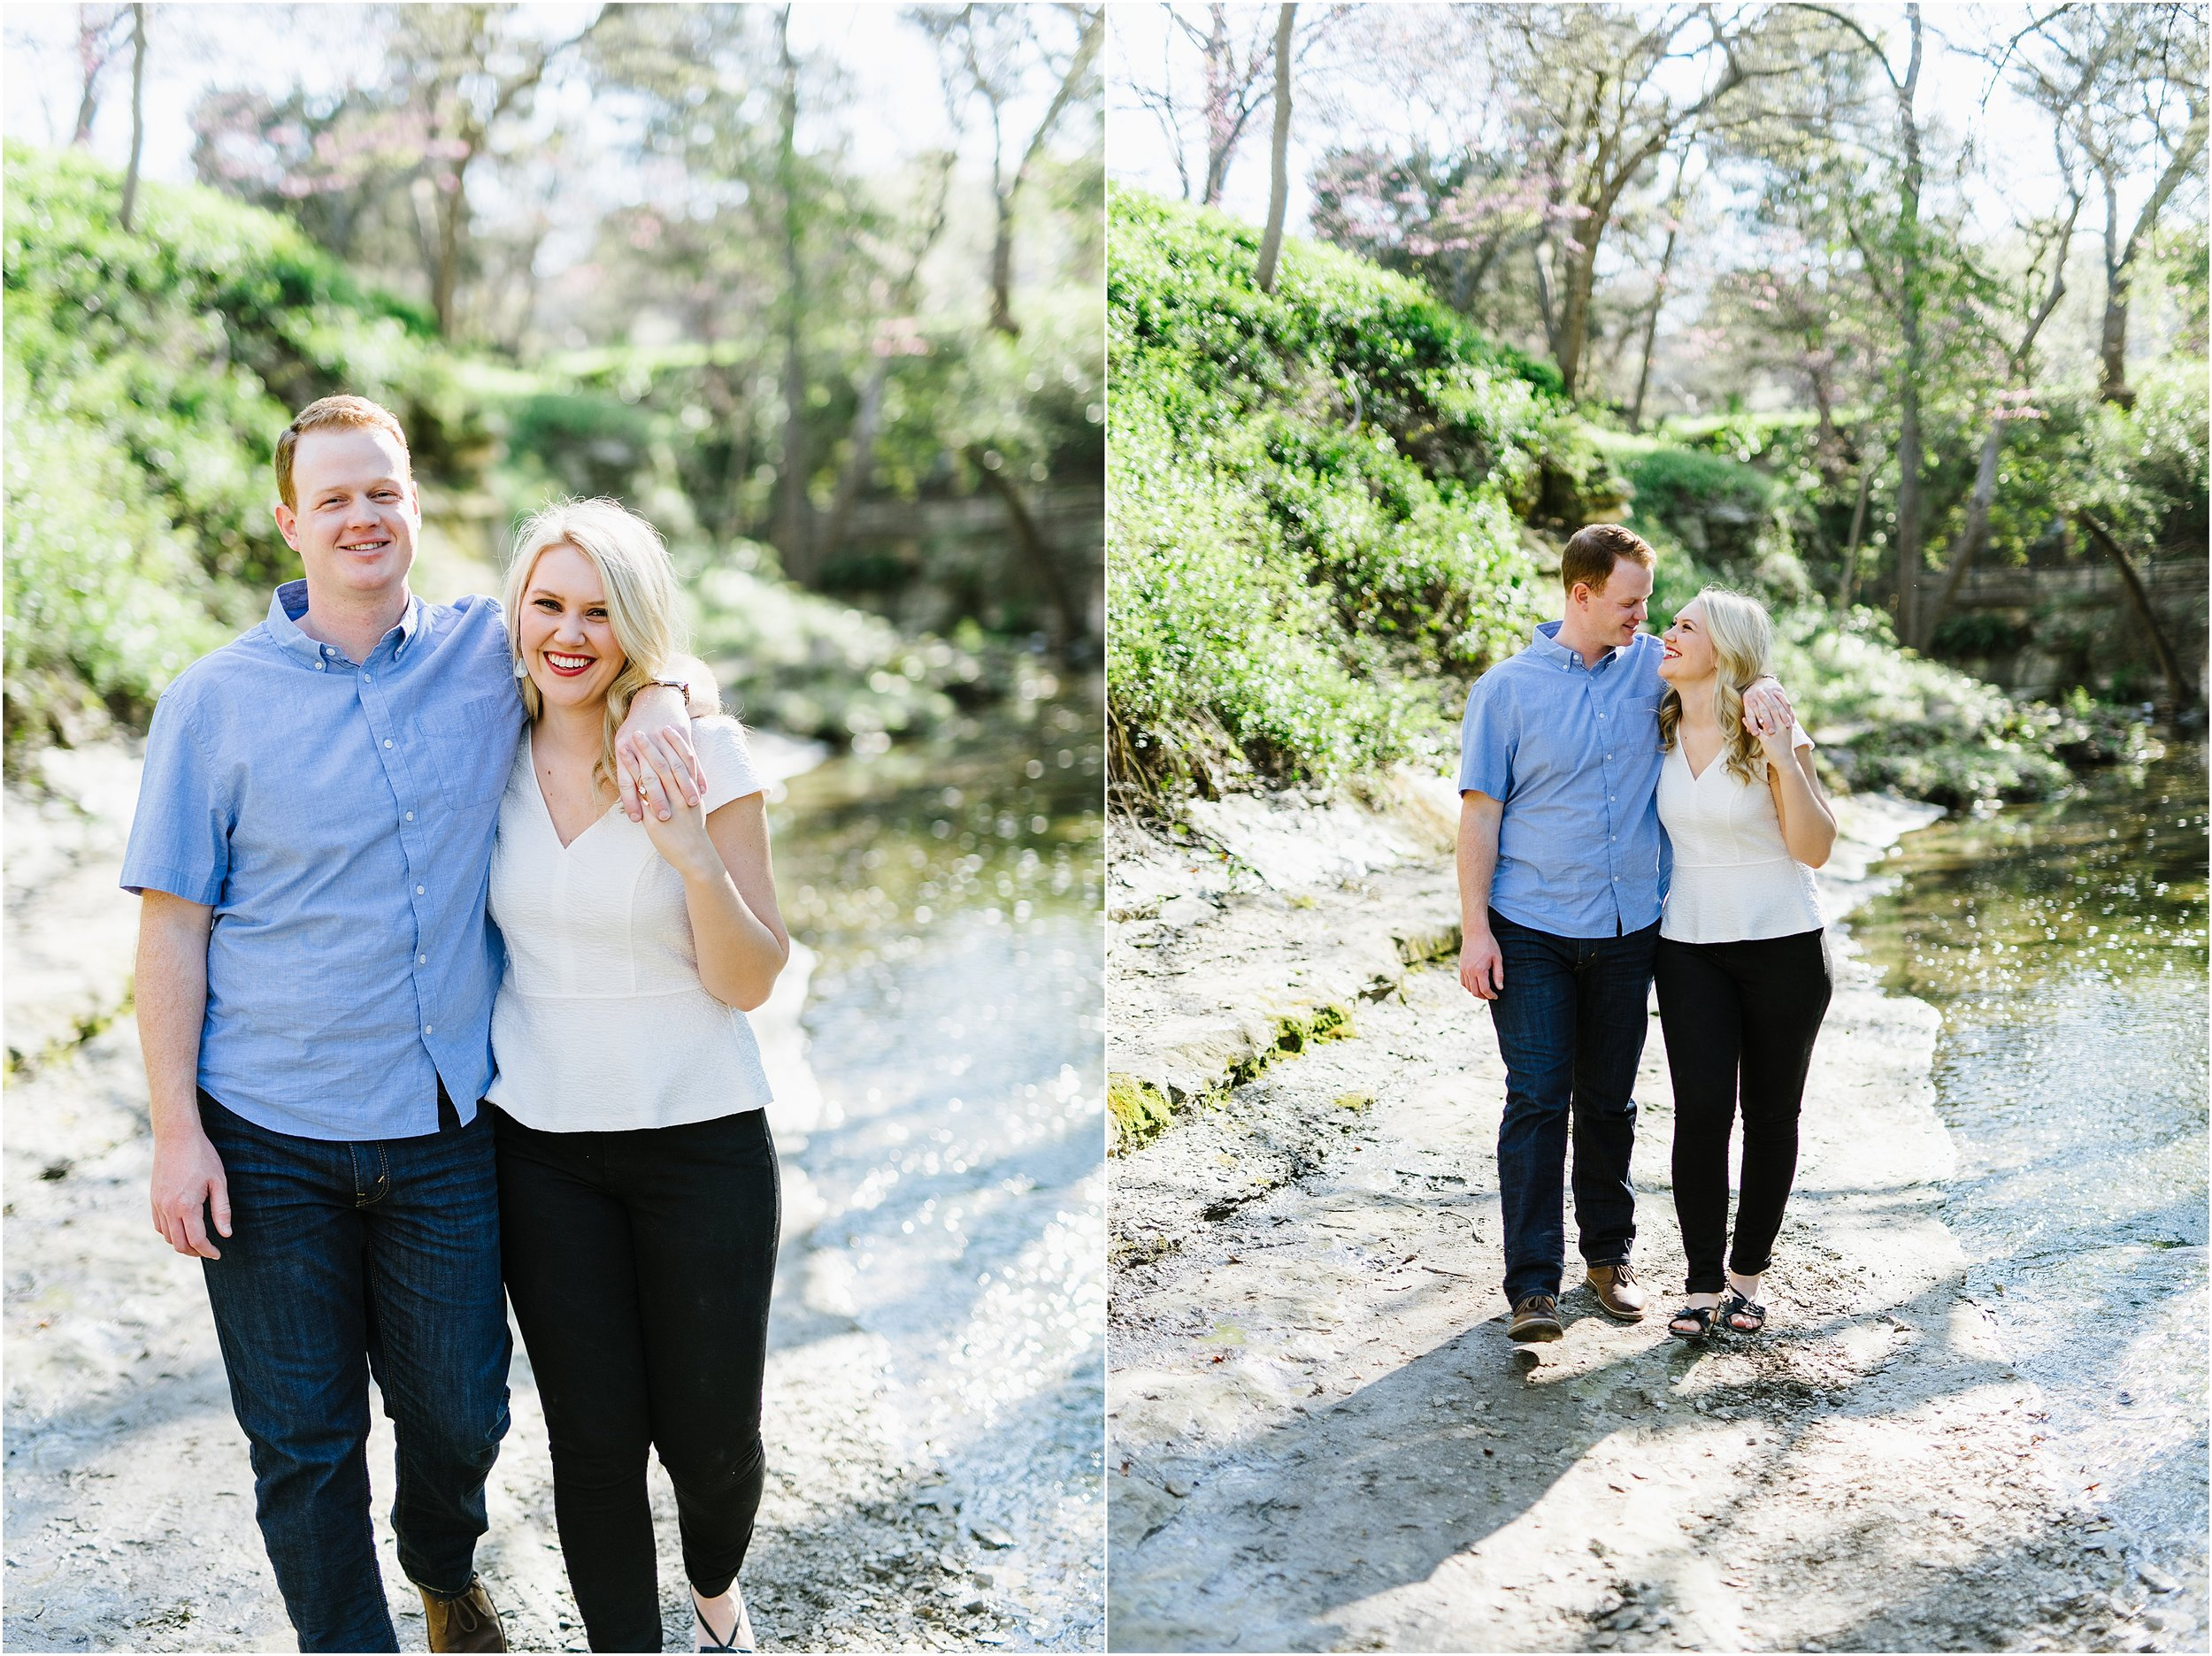 mattandjulieweddings-dallasweddingphotographers-C+J_0007.jpg